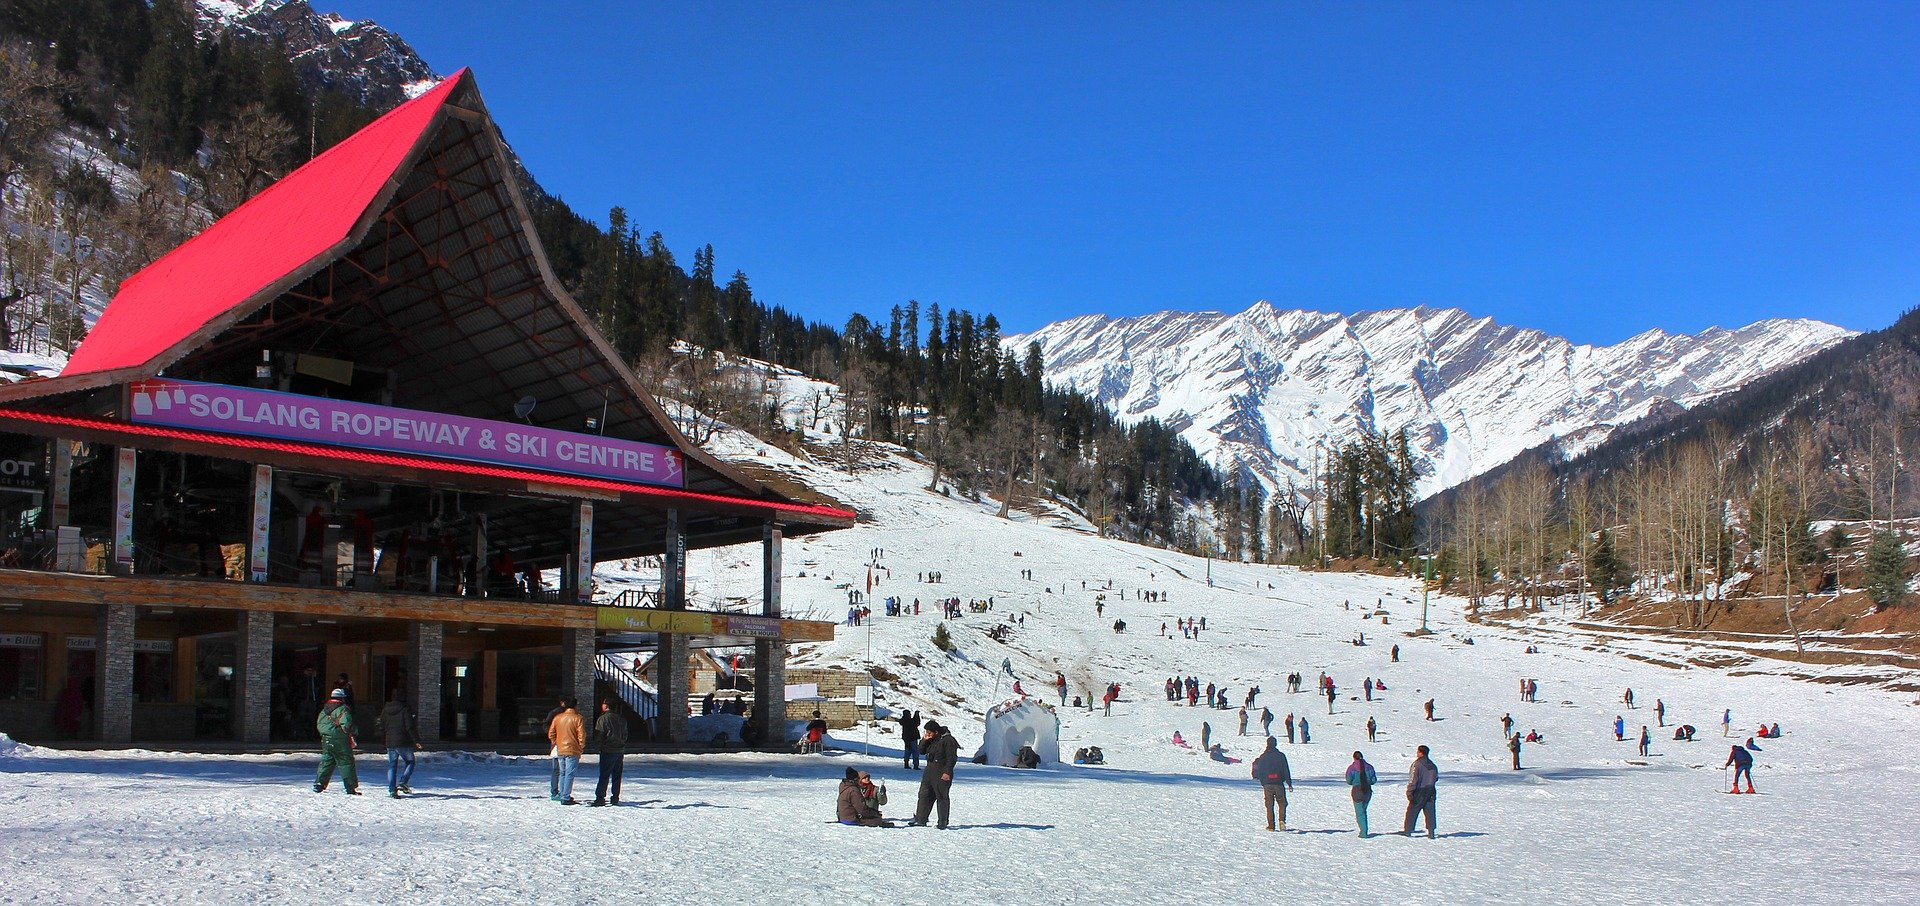 Manali is one of the oldest and the most popular tourist destinations in India